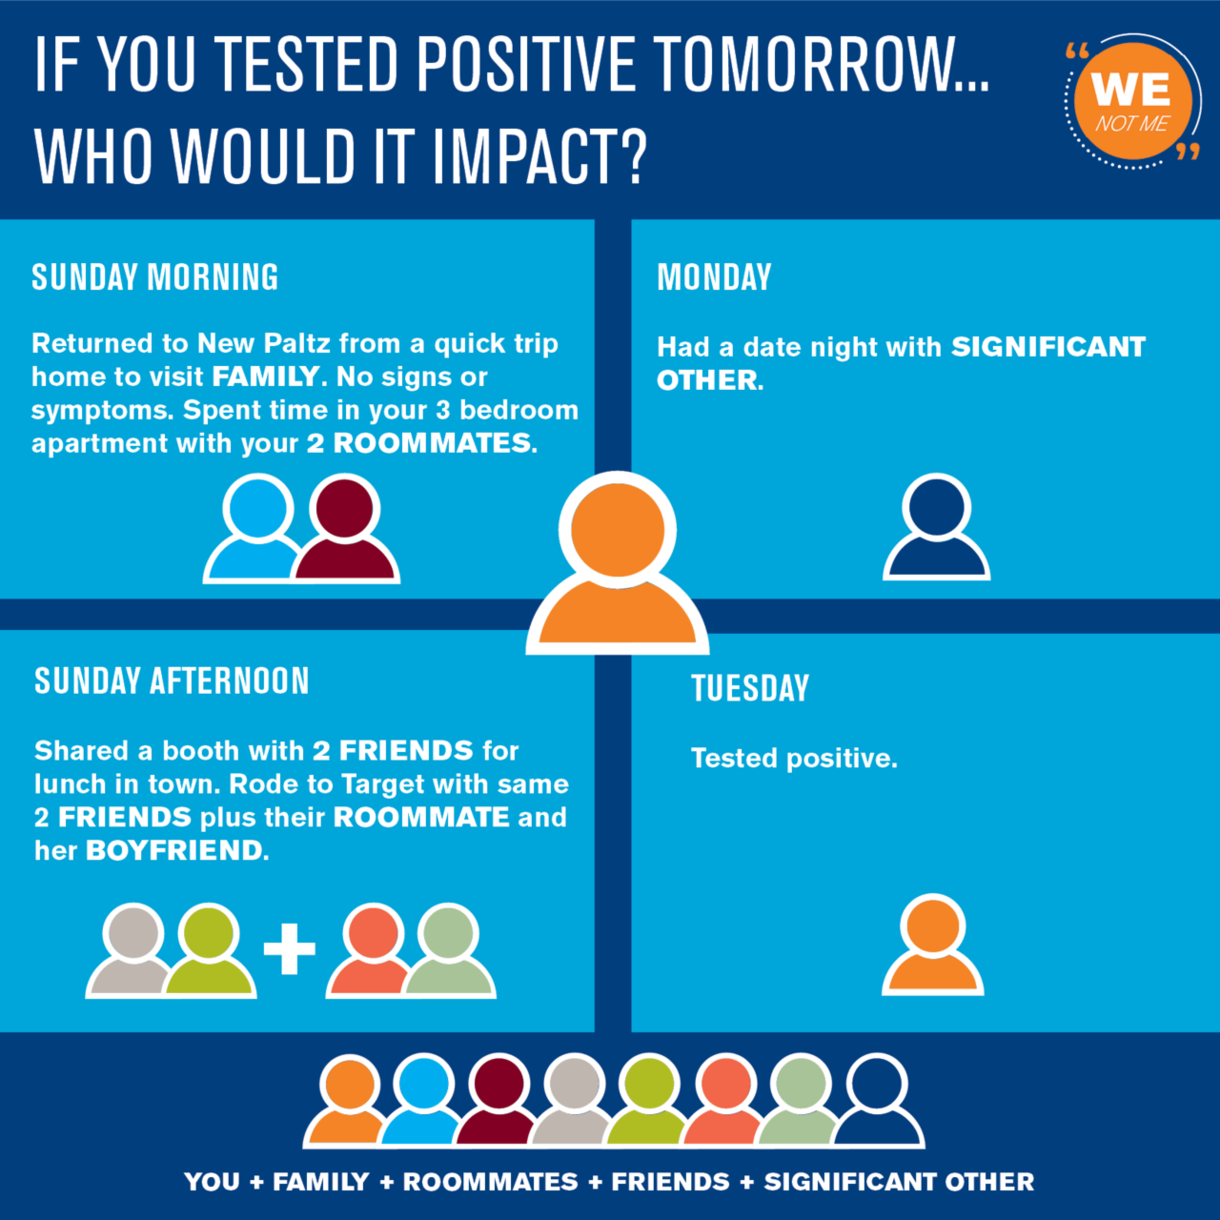 What if you tested positive tomorrow?